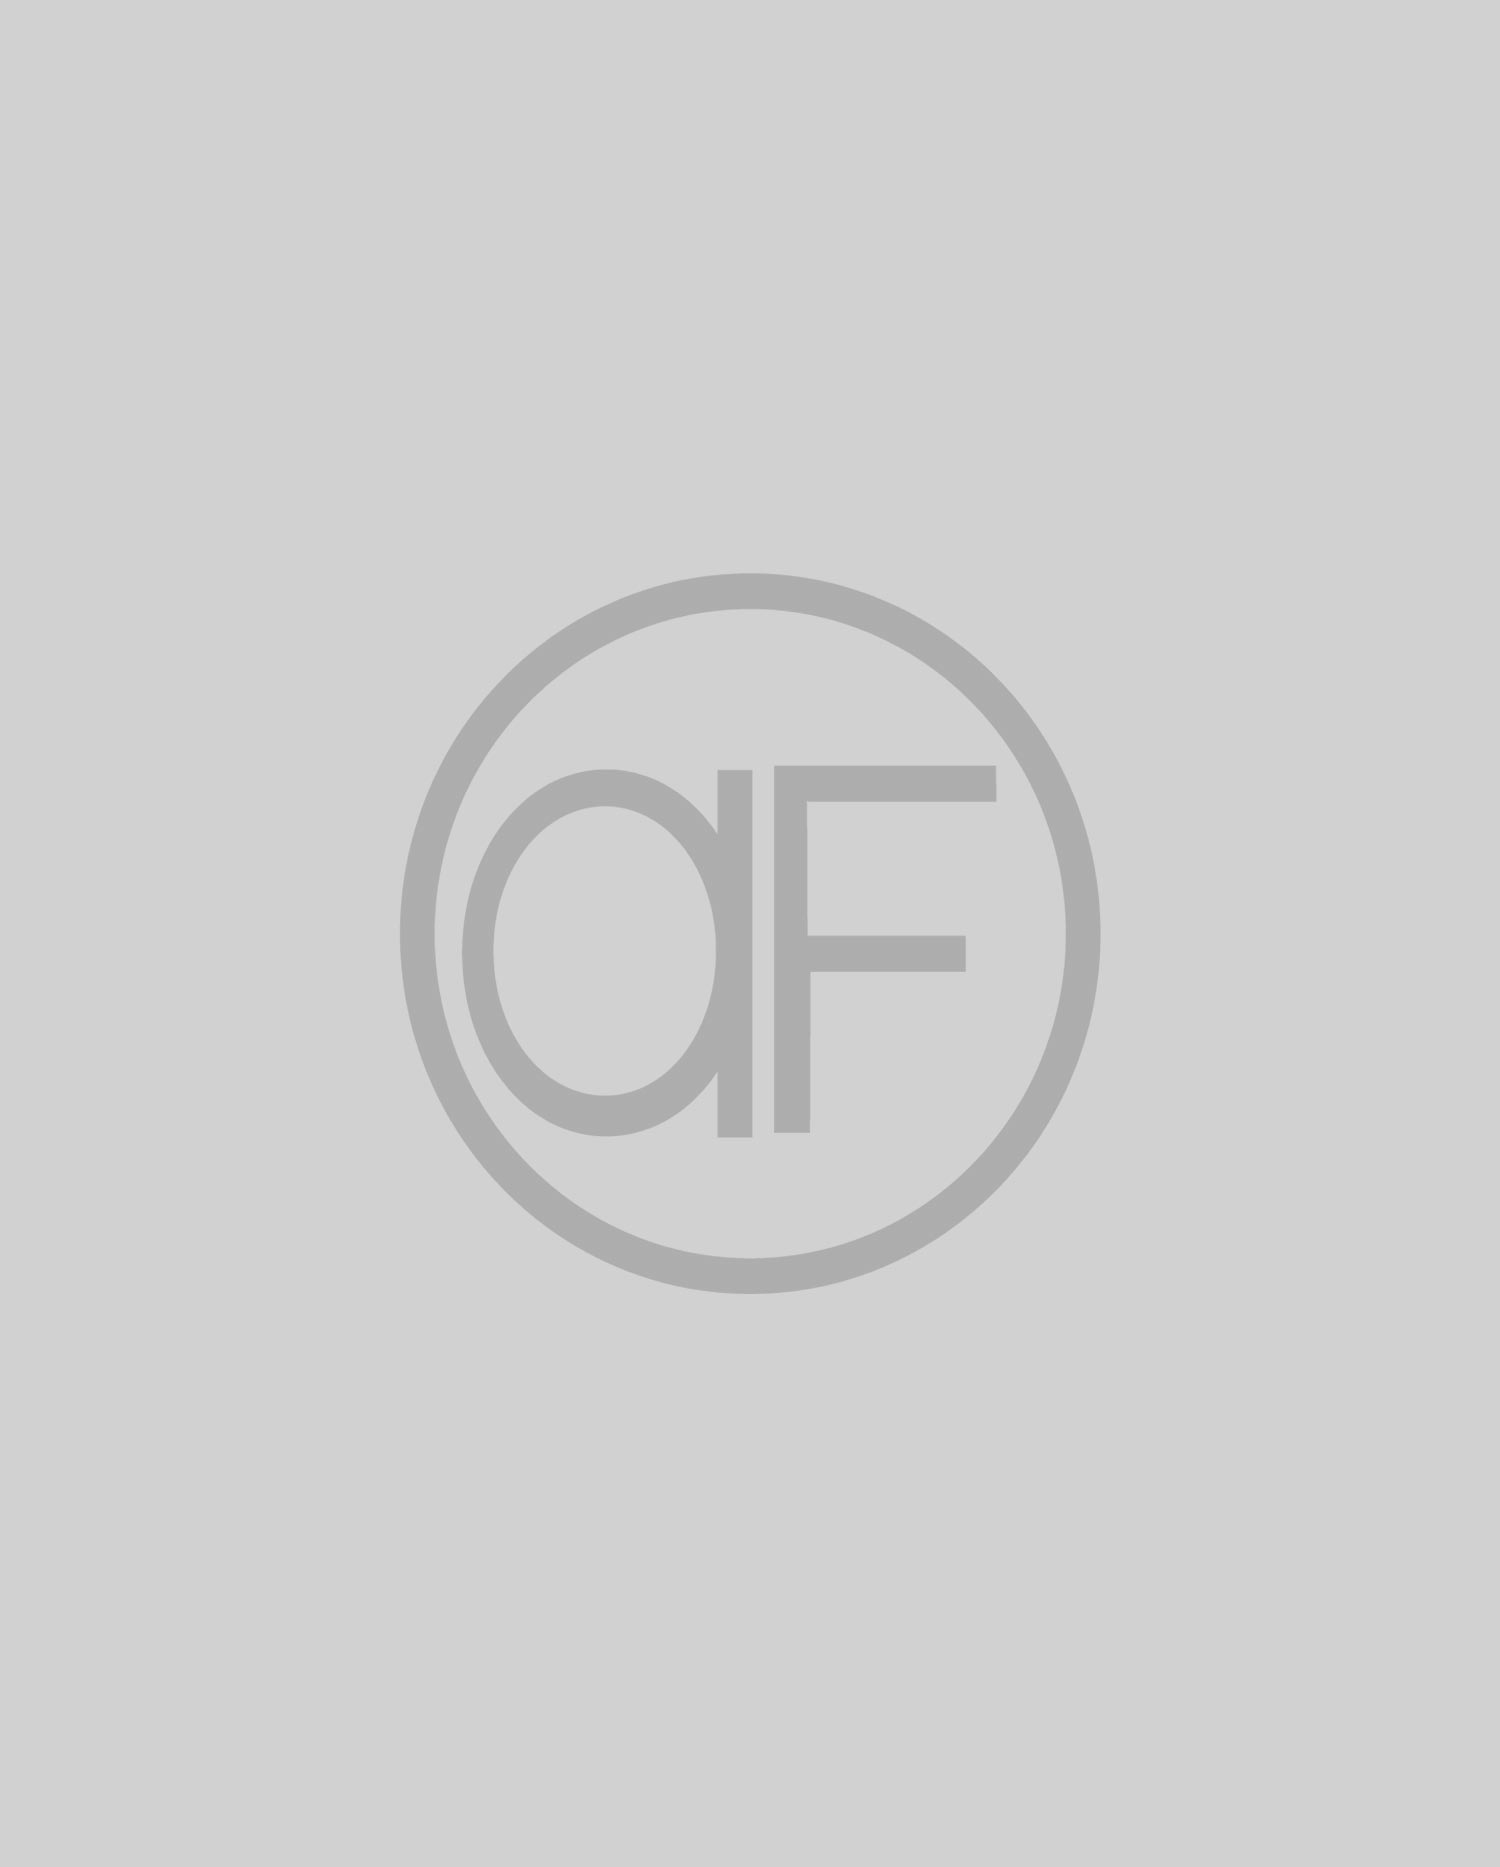 CONNIE white shirt front view